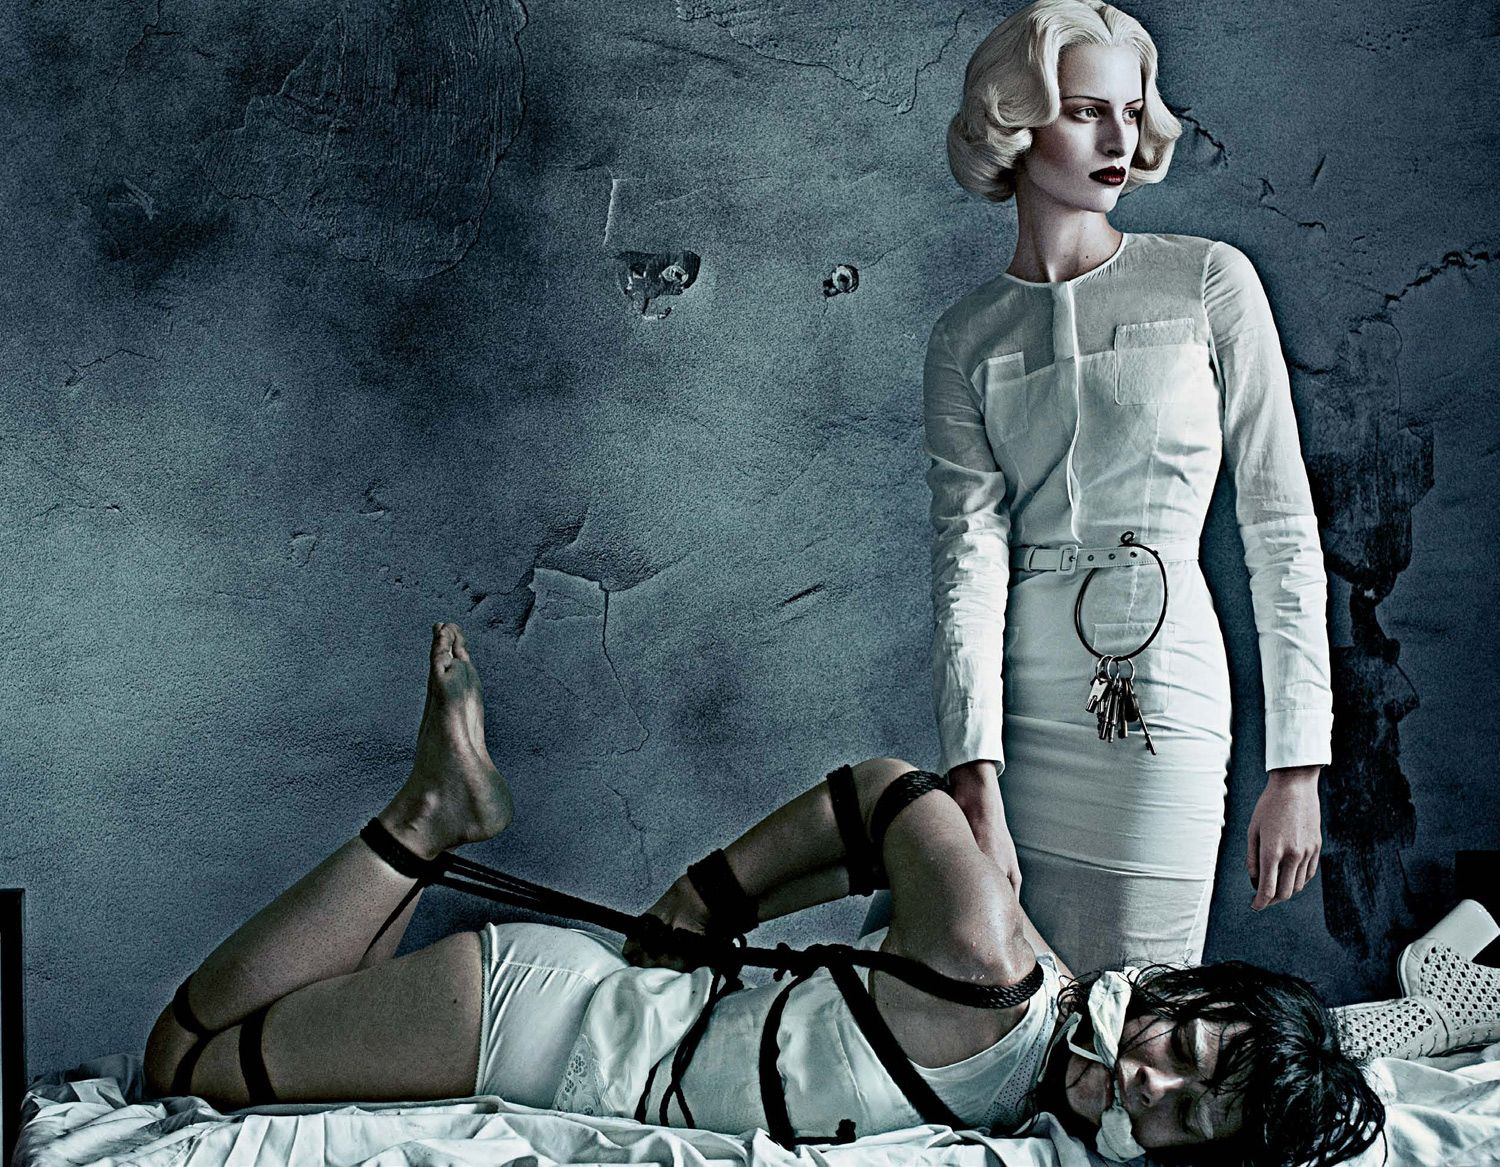 Photo credit: Steven Klein